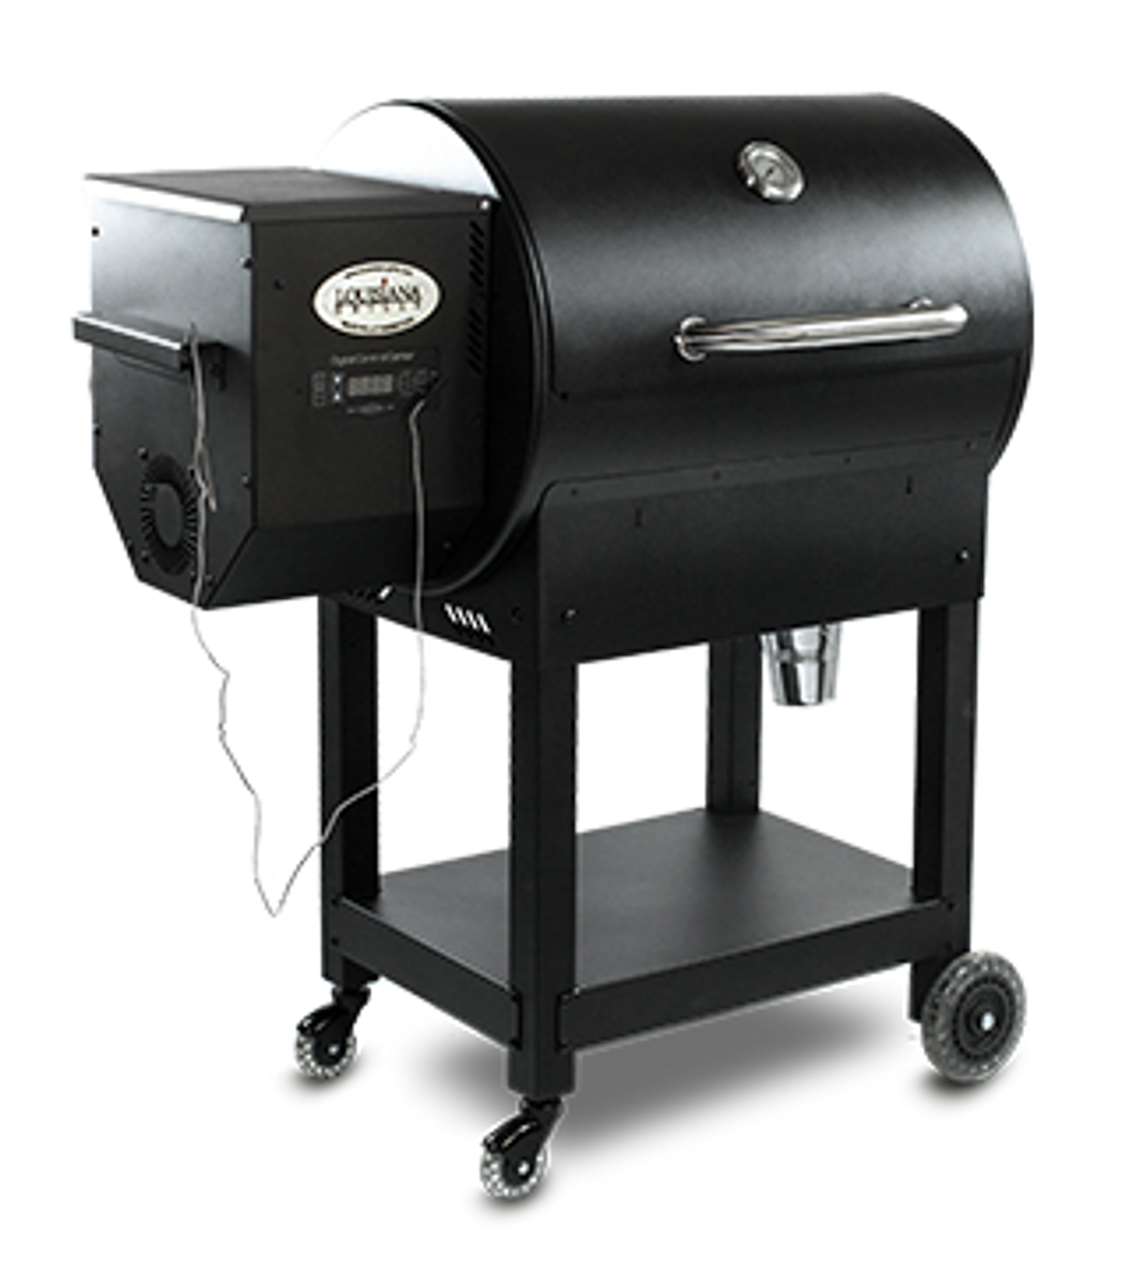 Louisiana Grills LG 700 - Wood Pellet Grill